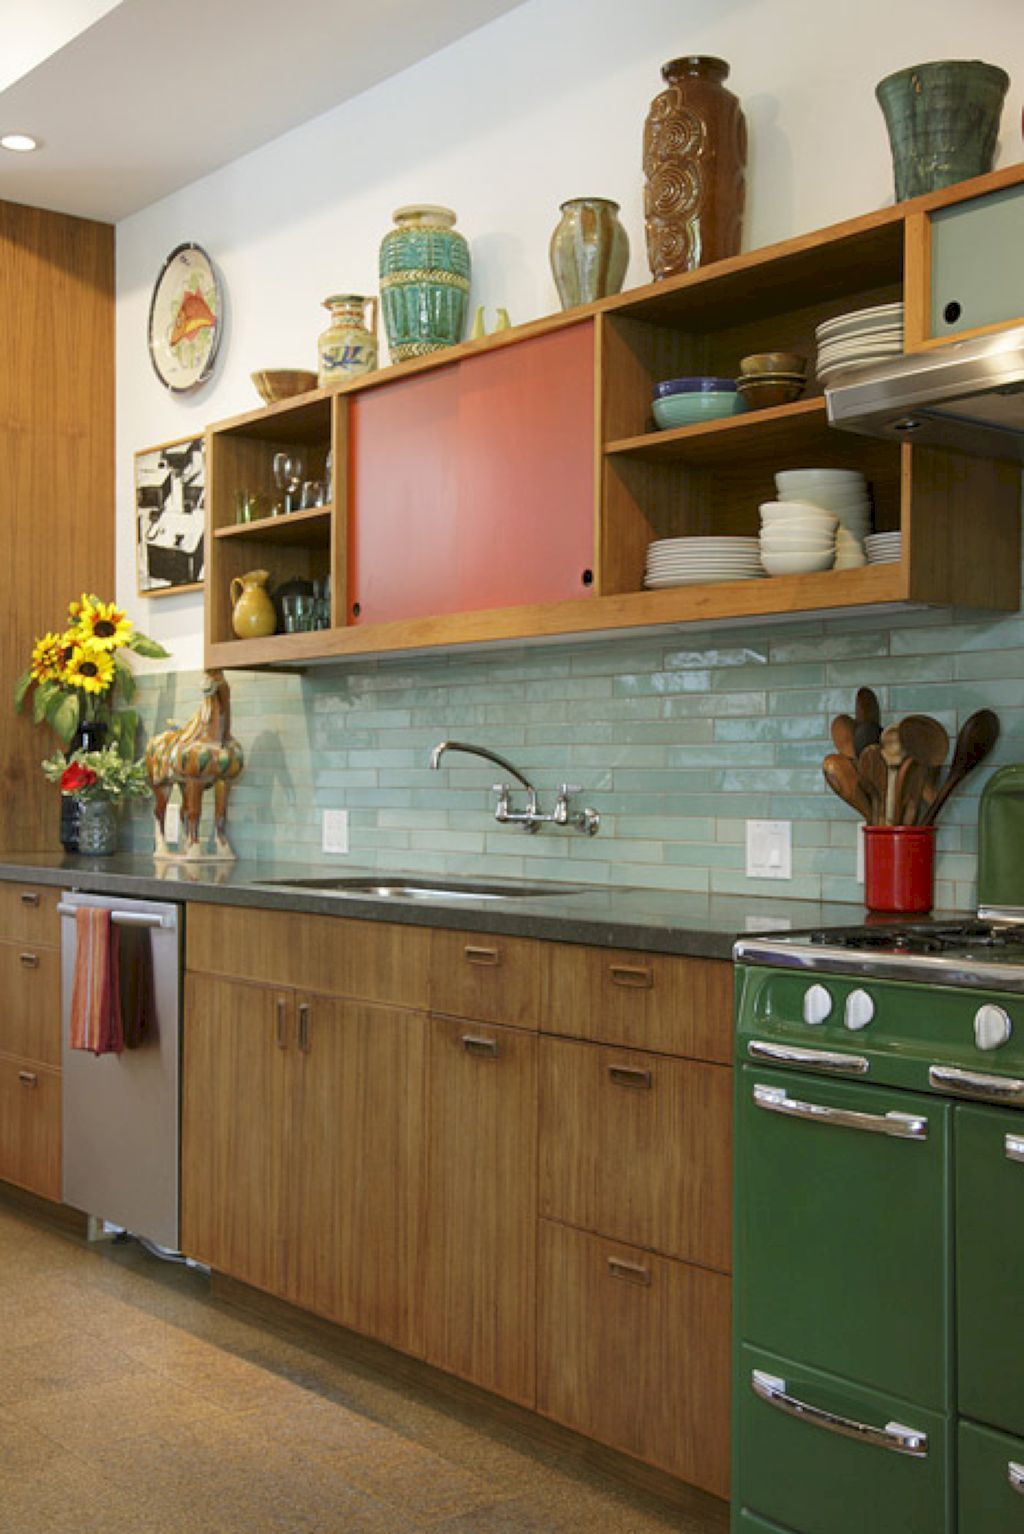 fifteen marvelous mid century modern kitchen designs kitchen backsplash designs modern on kitchen remodel must haves id=75238